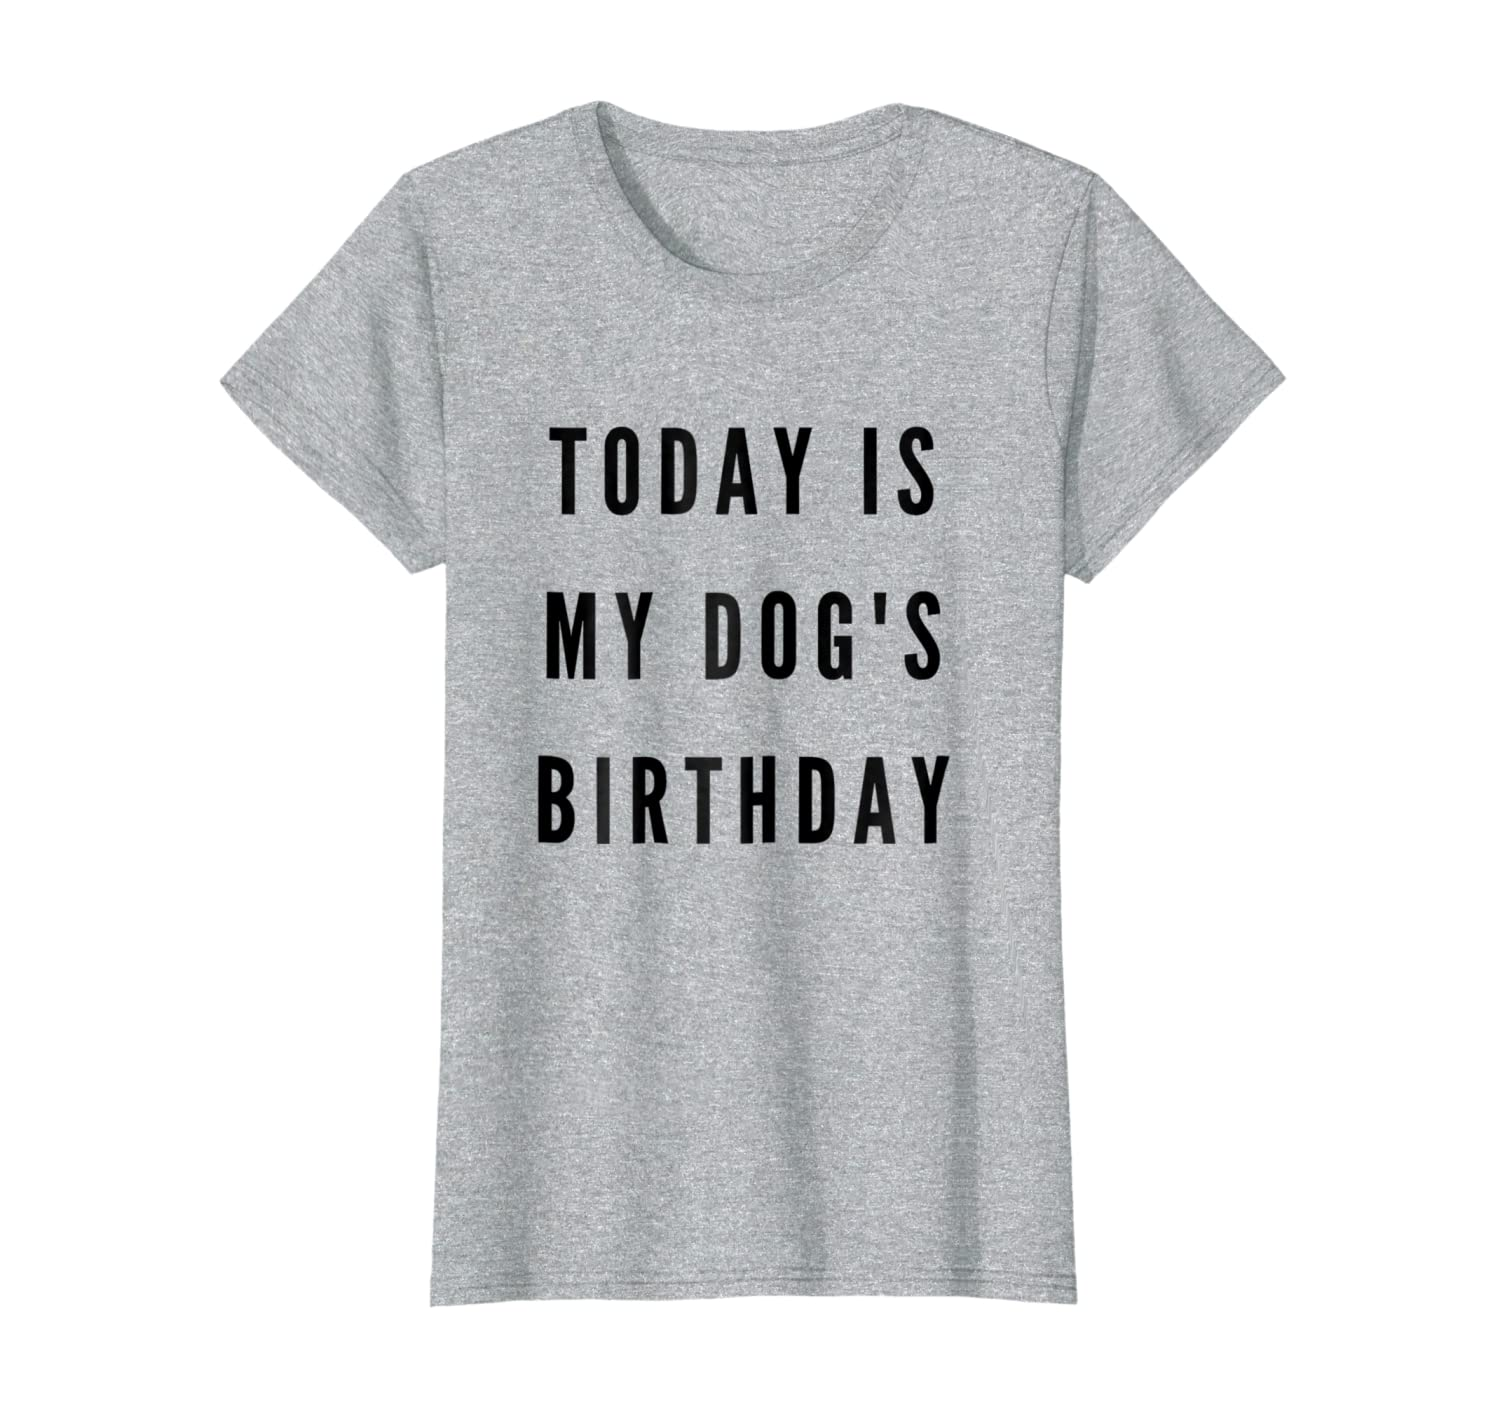 9c1ca0c15ea8 Today Is My Dog's Birthday Funny Dog Owner T-Shirt at Amazon Men's Clothing  store: